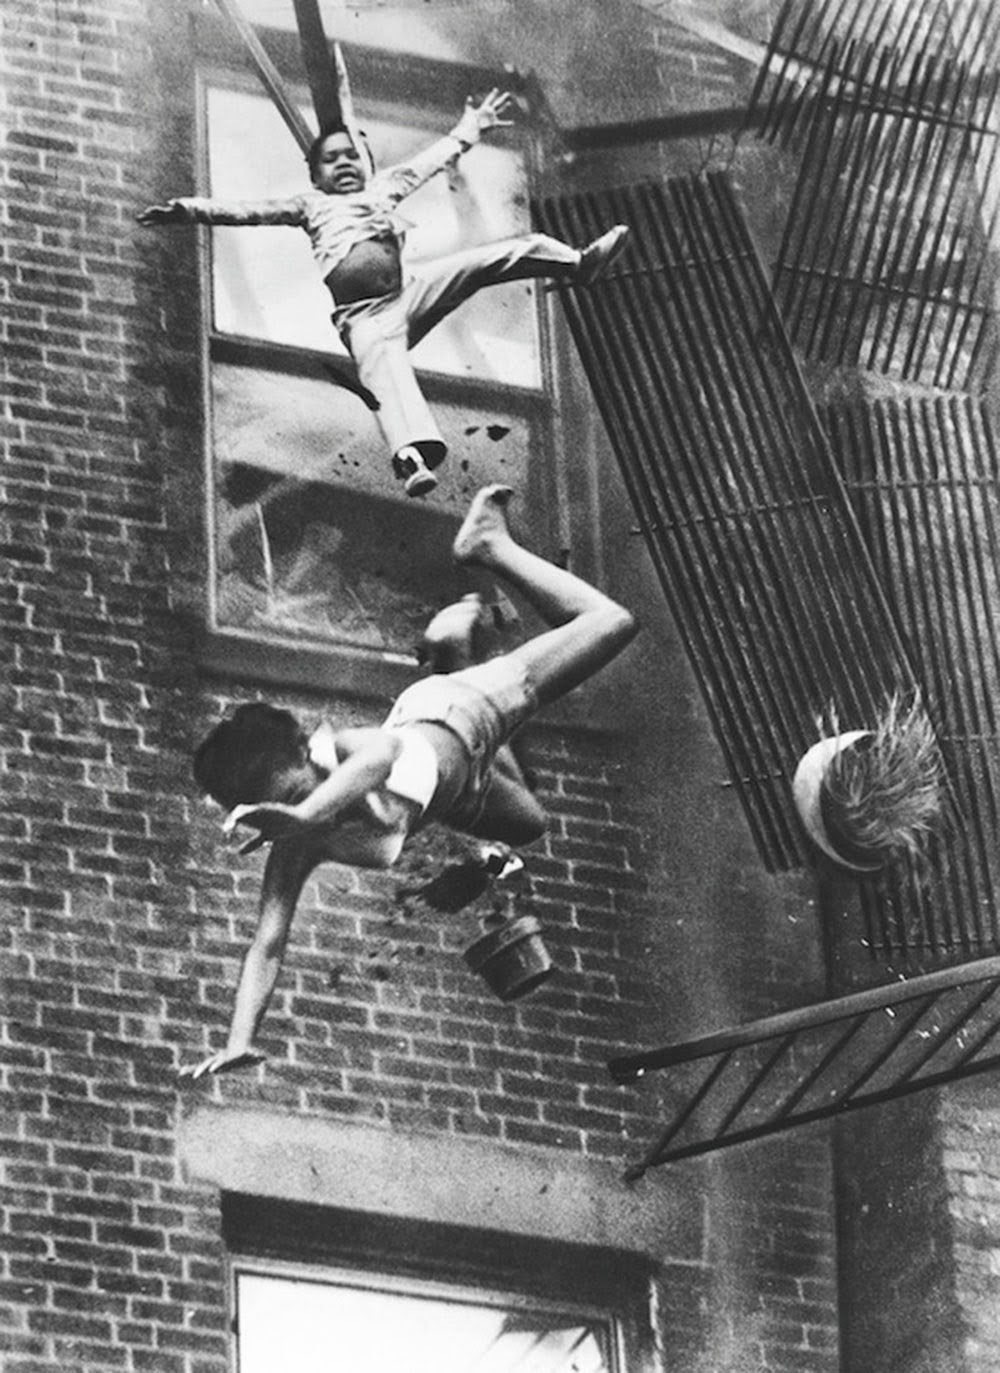 a_mother_and_her_daughter_falling_from_a_fire_escape_1975_1.jpg